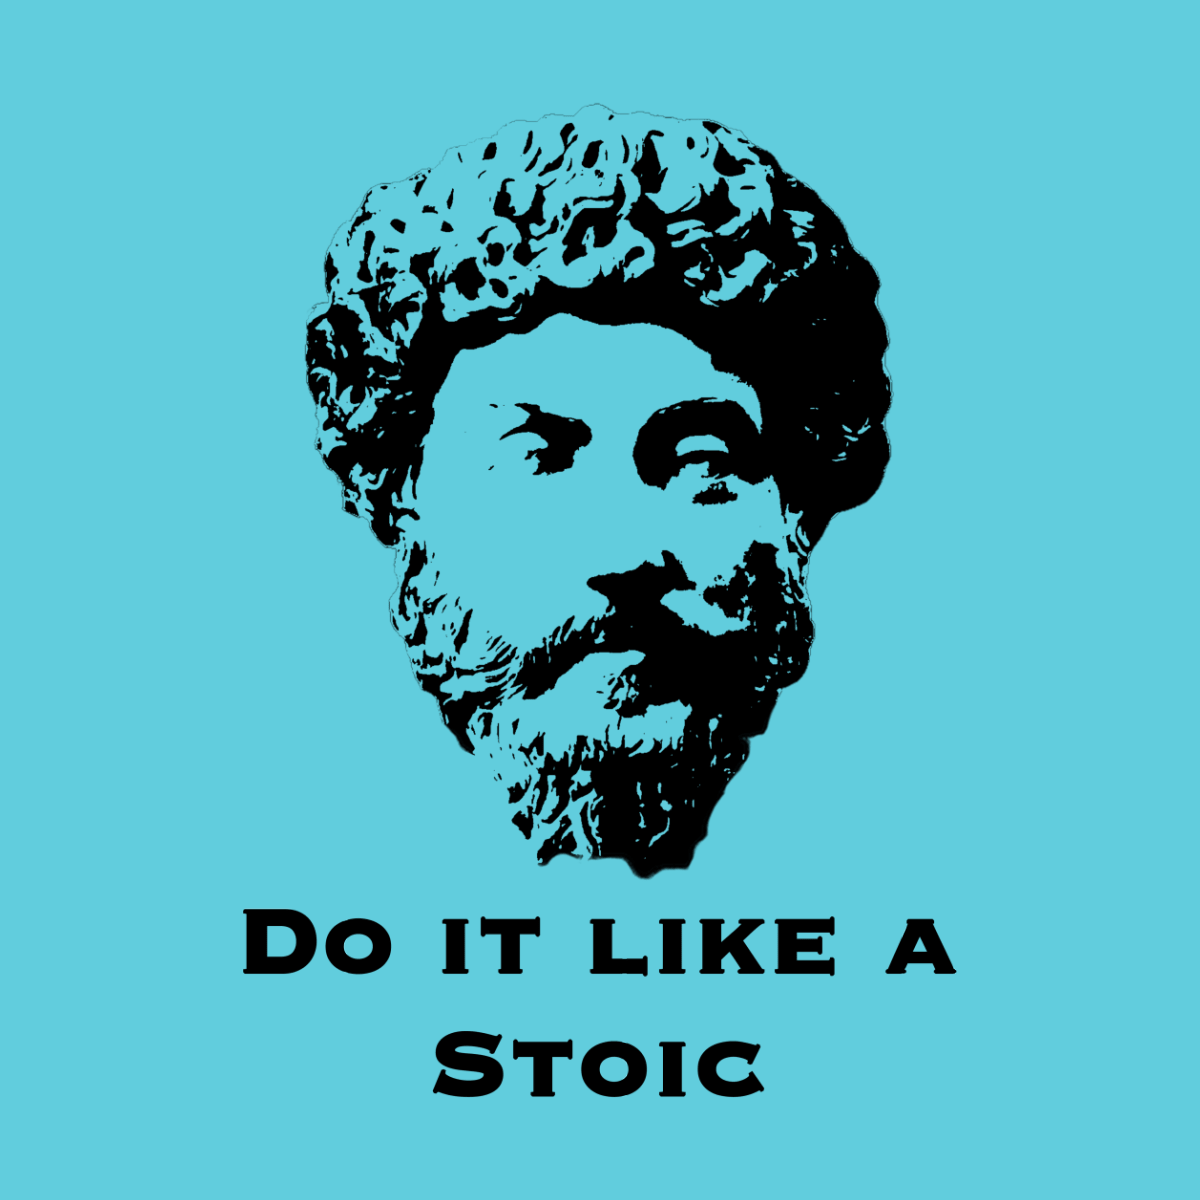 living like a stoic in the modern world